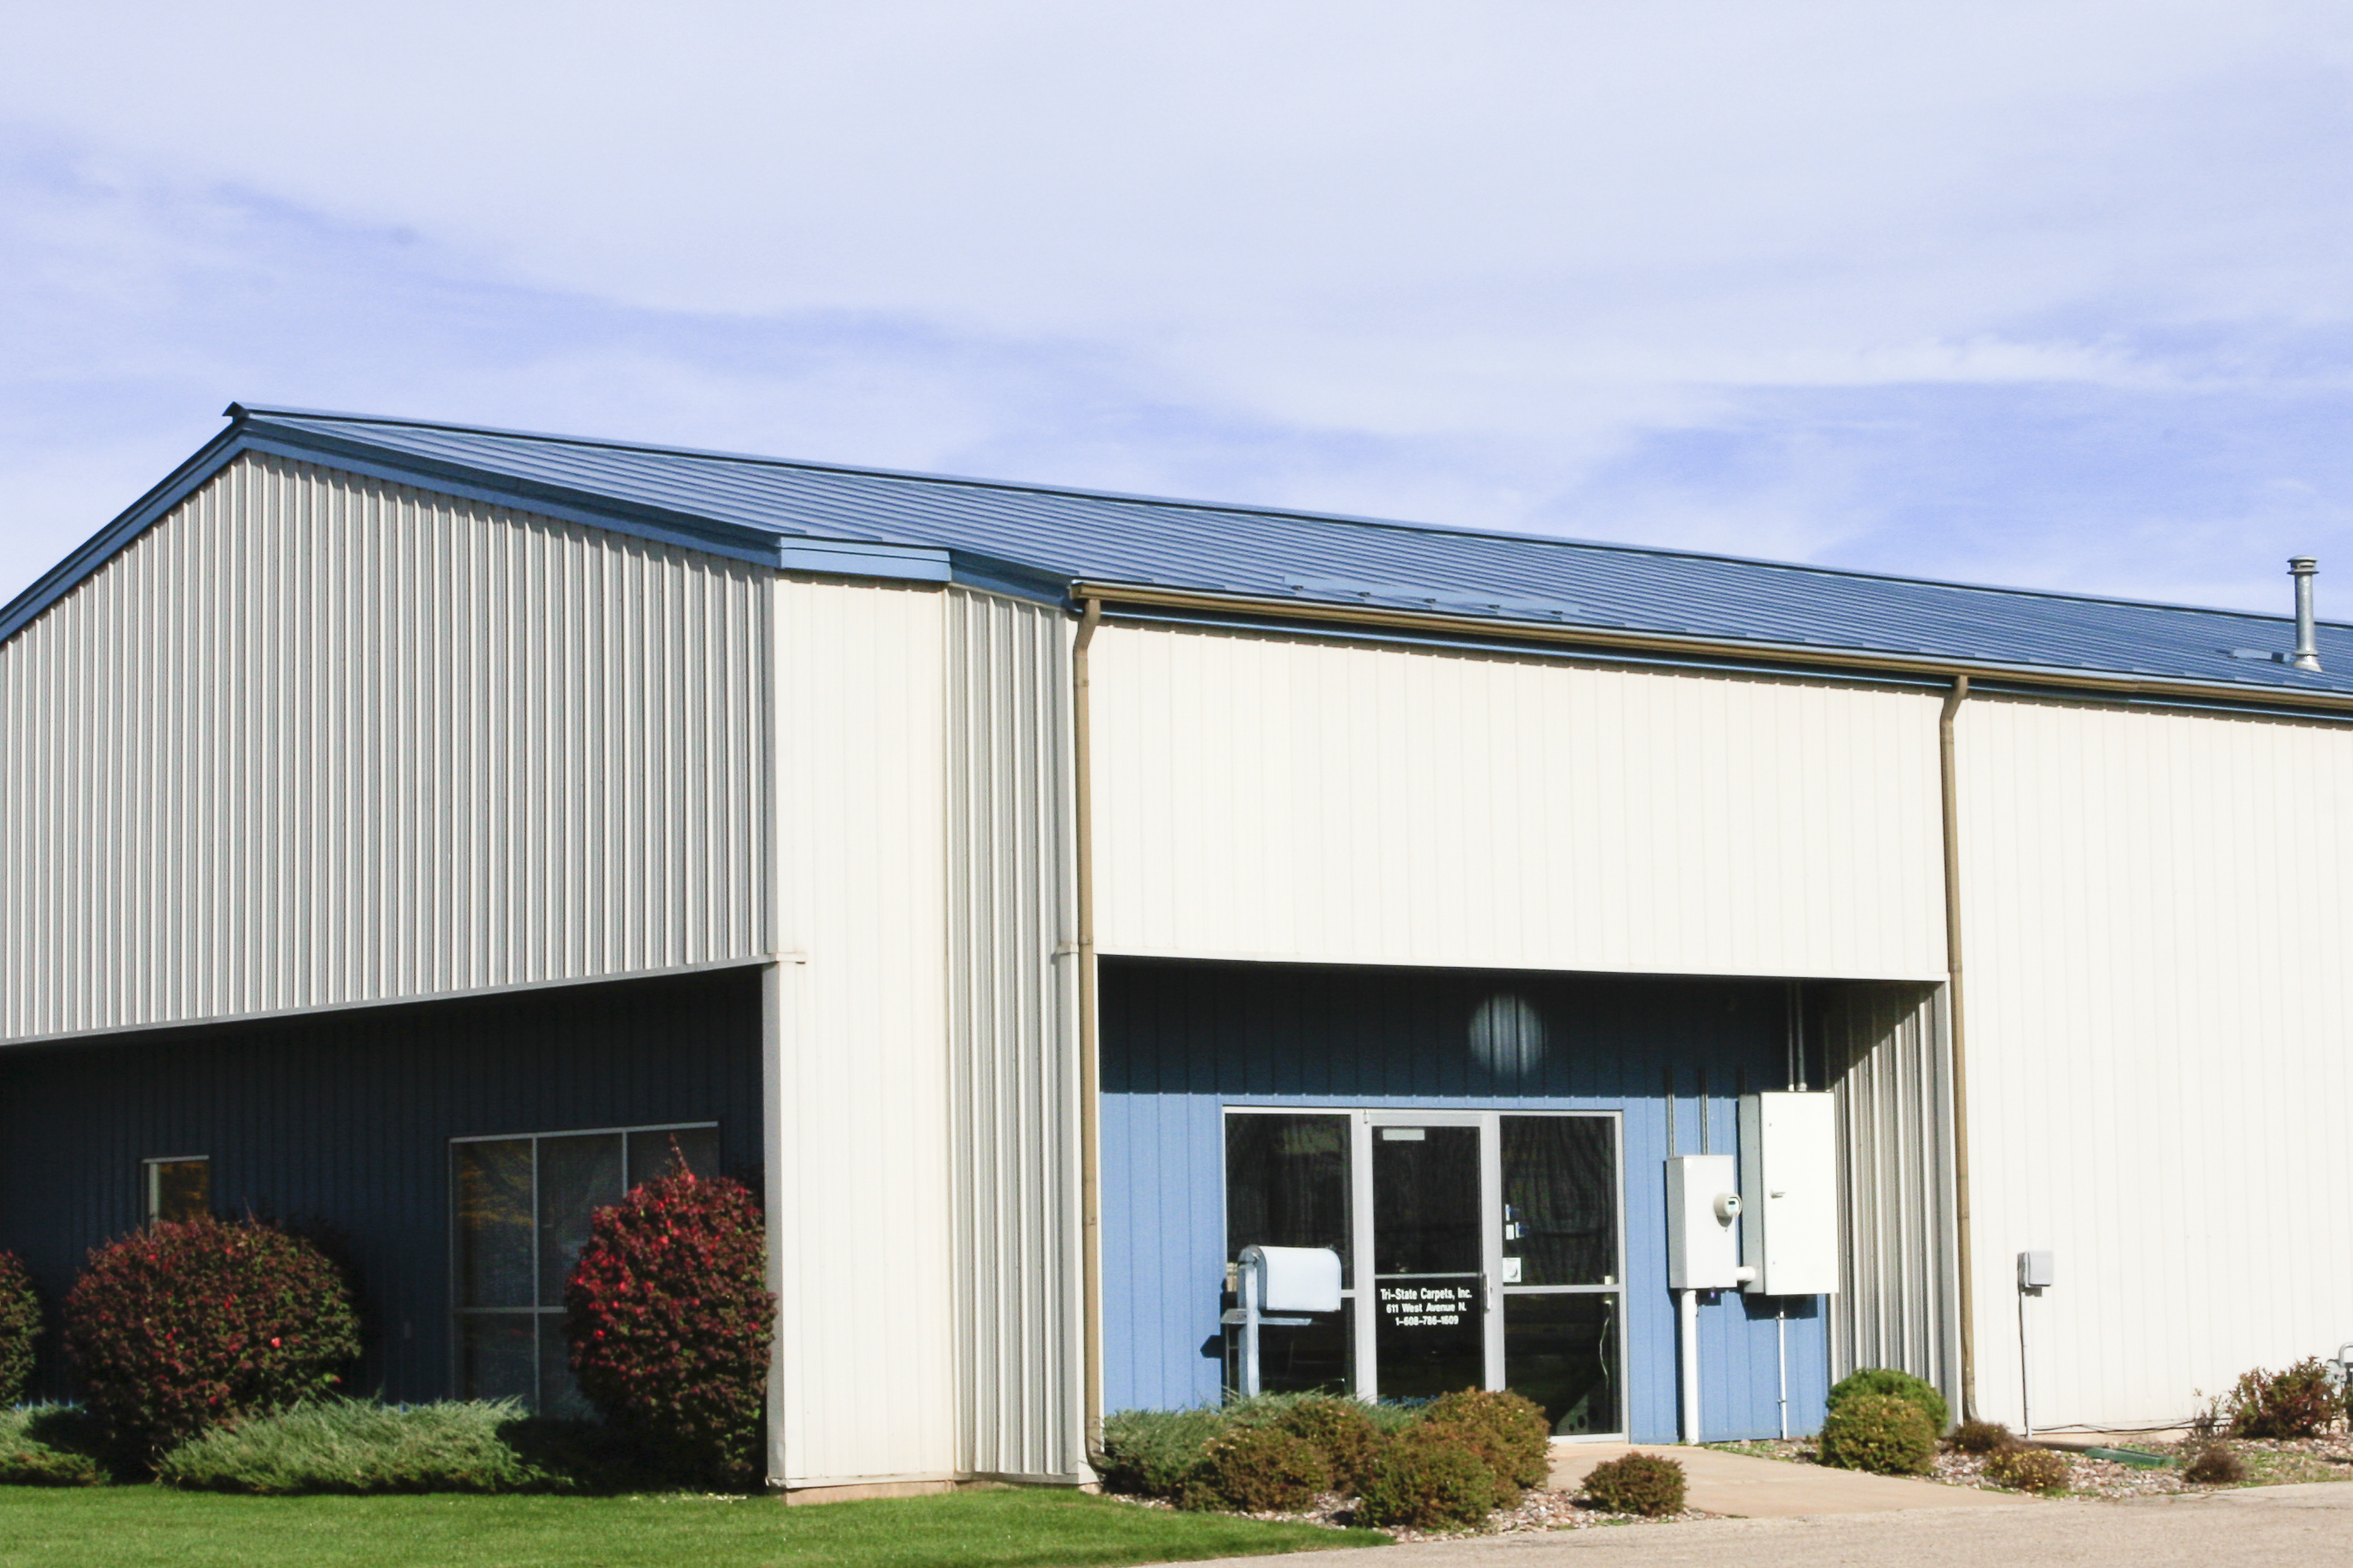 Standing seam sheet metal roofing commercial regal blue wisconsin minnesota iowa illinois north dakota